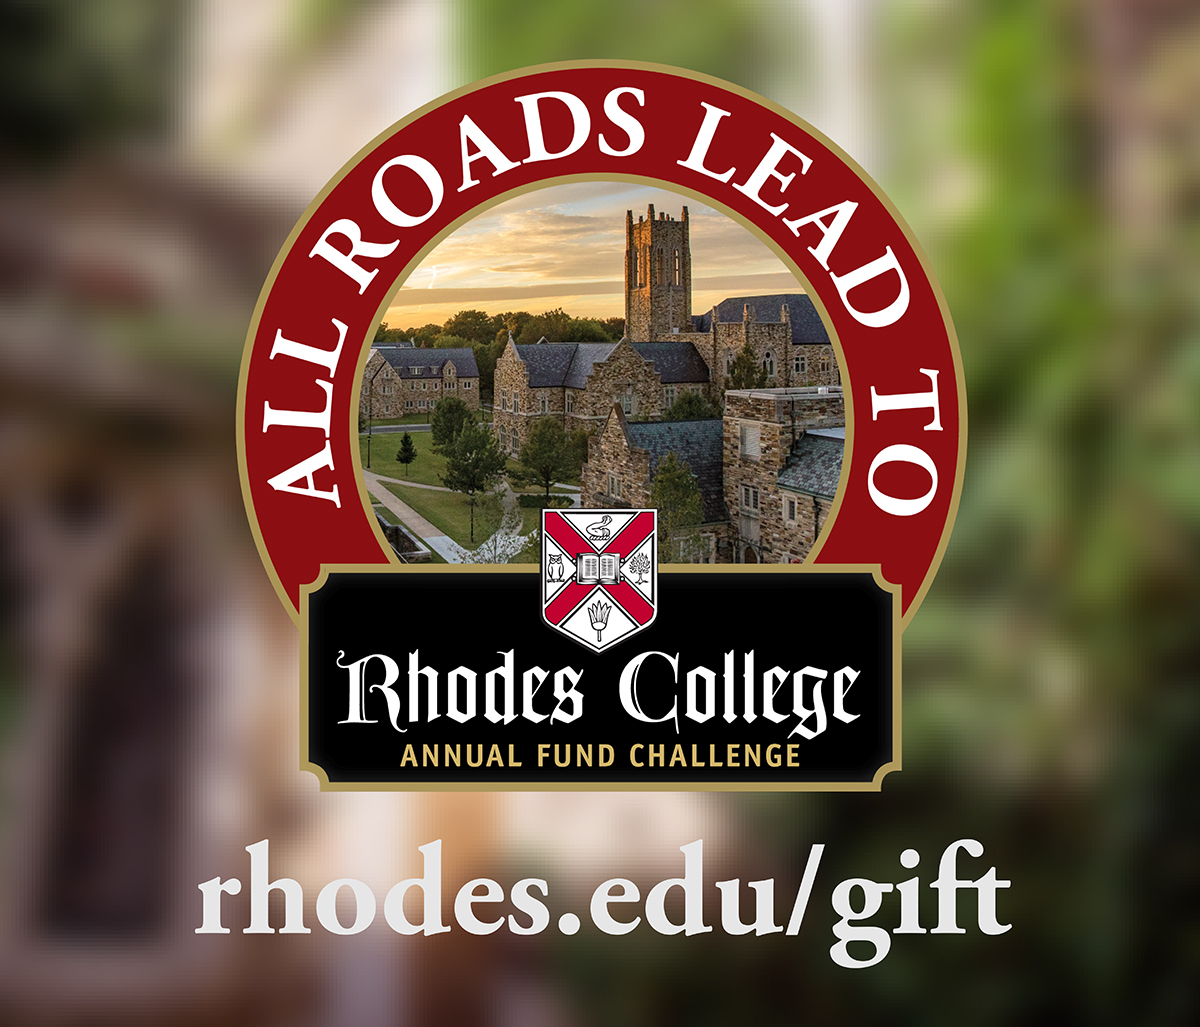 All Roads Lead to Rhodes Image